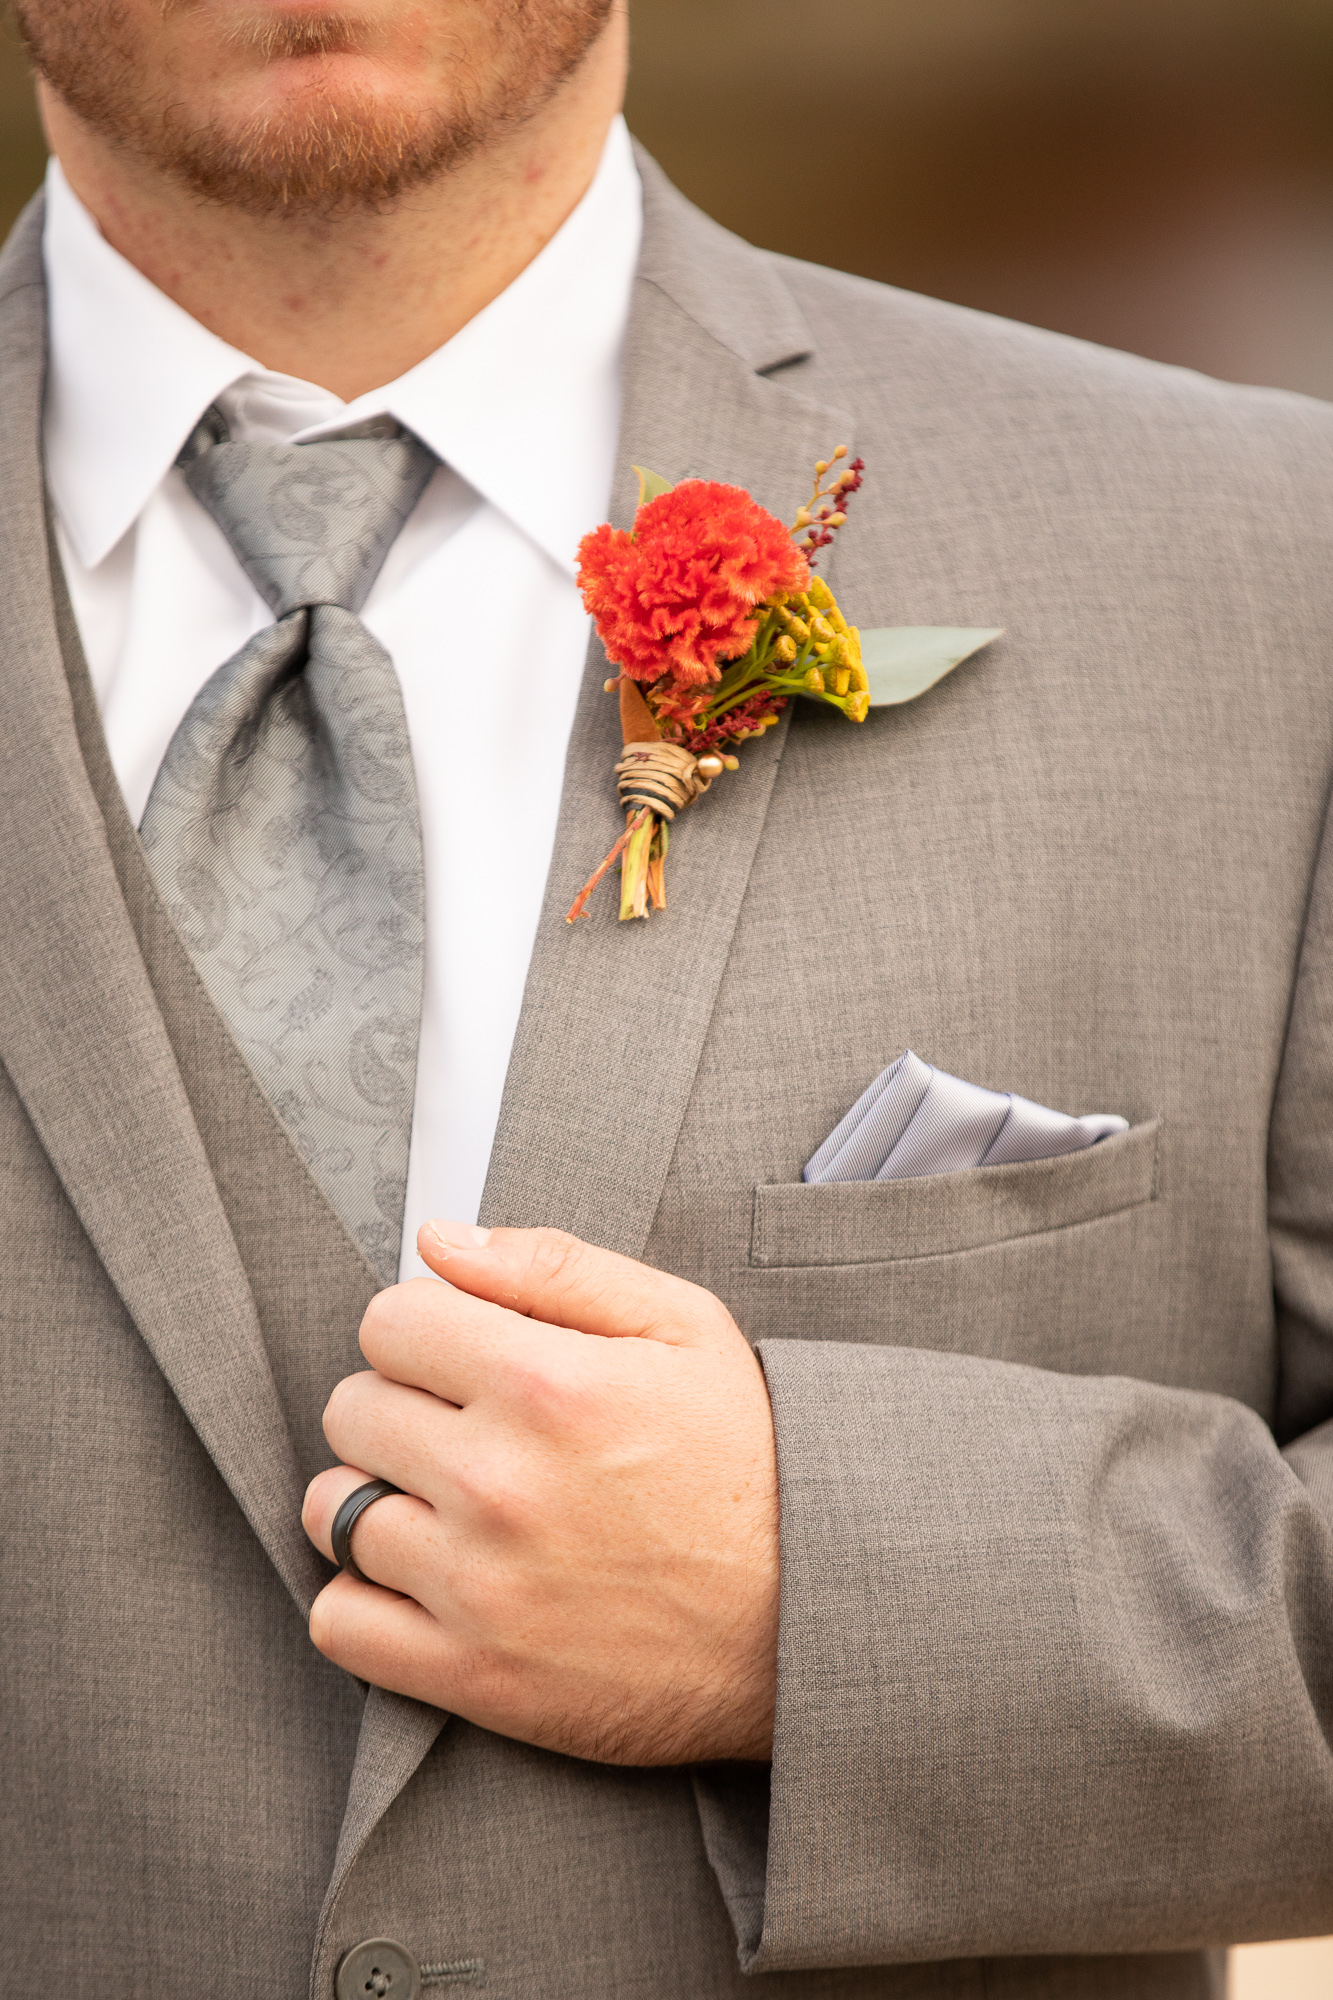 Cable Creations suit at The Gathering Place wedding with Posies by Patti boutonniere.